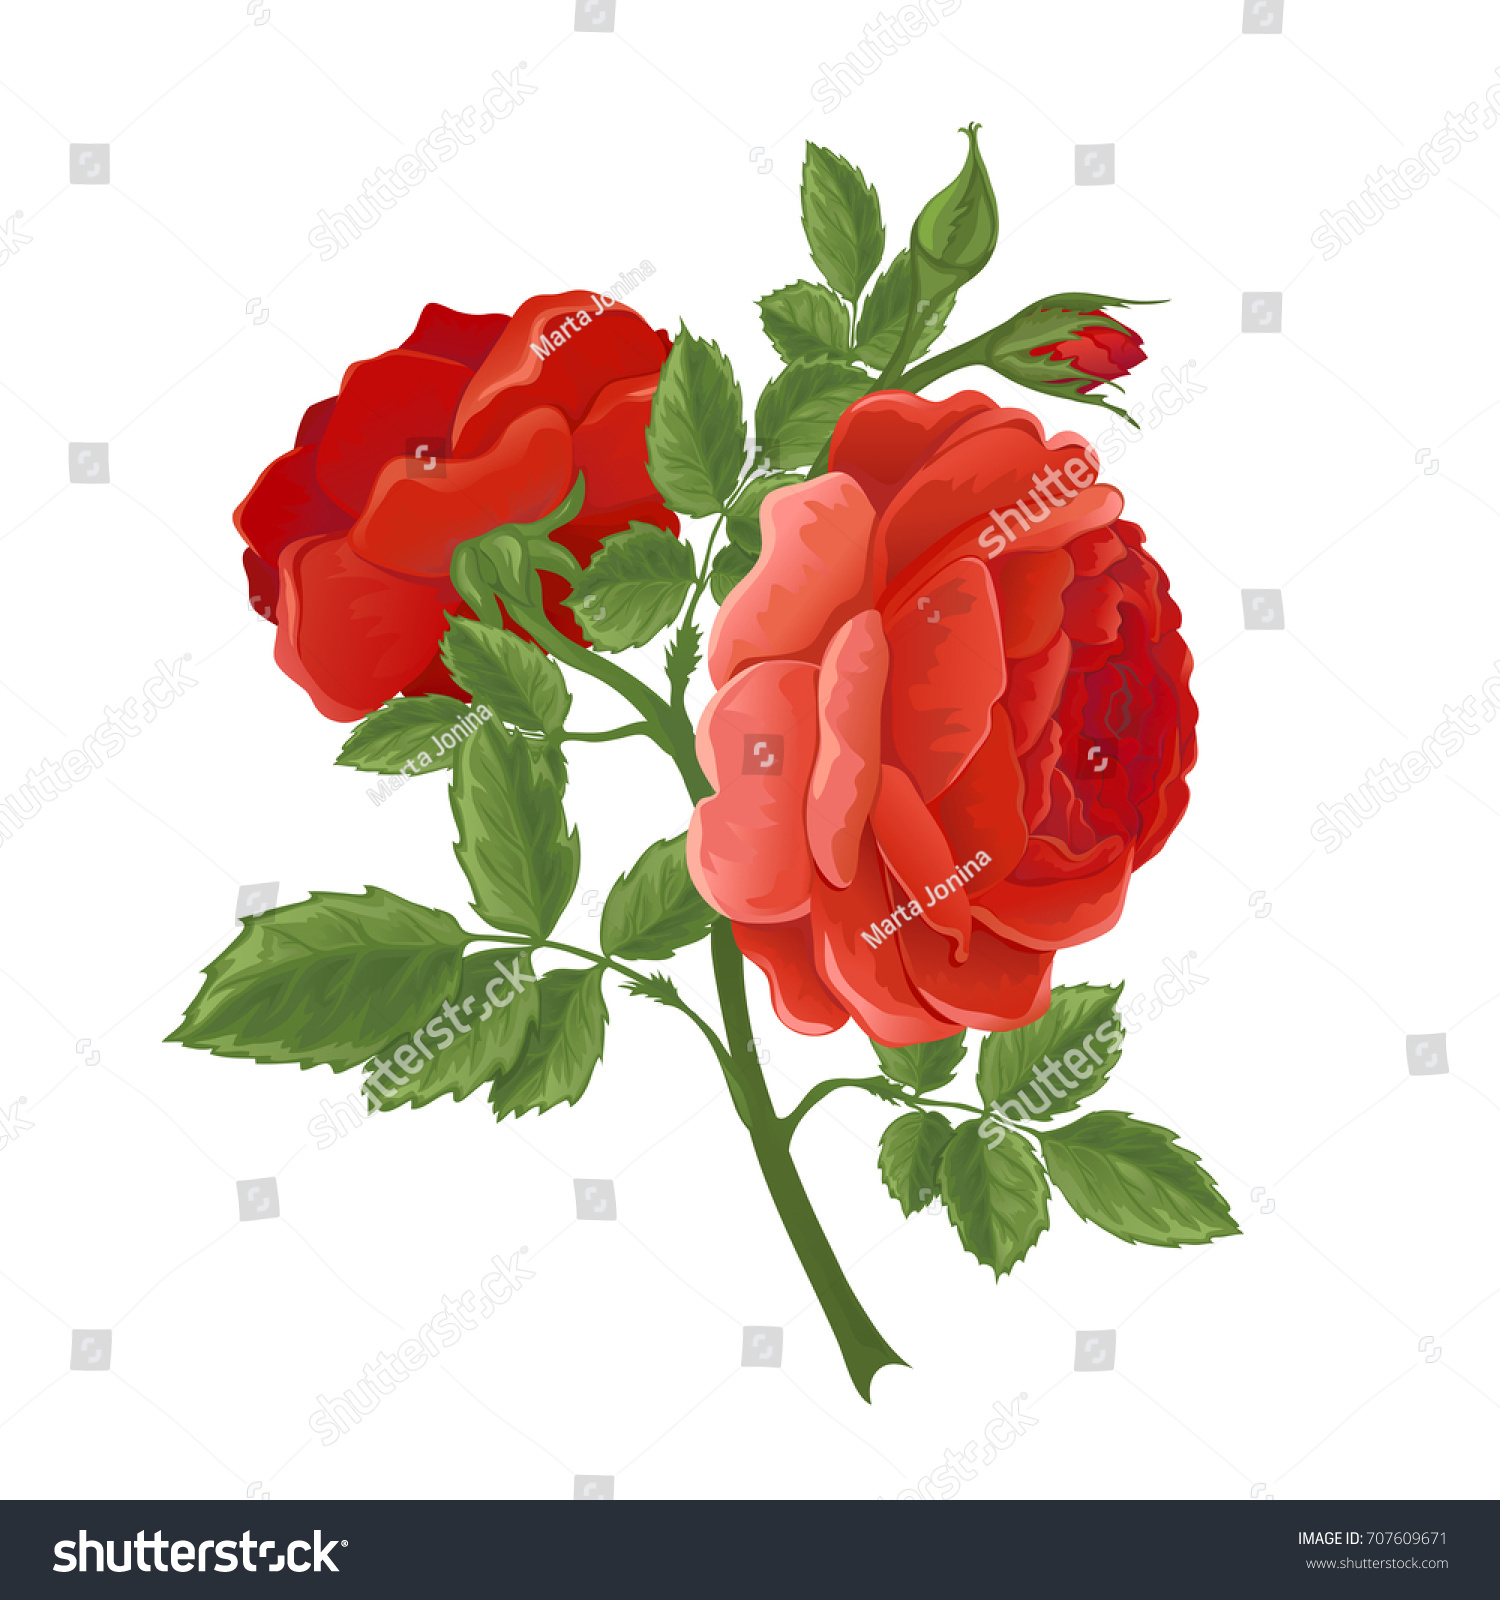 English Red Rose Graphic Flowers Wedding Stock Vector (Royalty Free ...